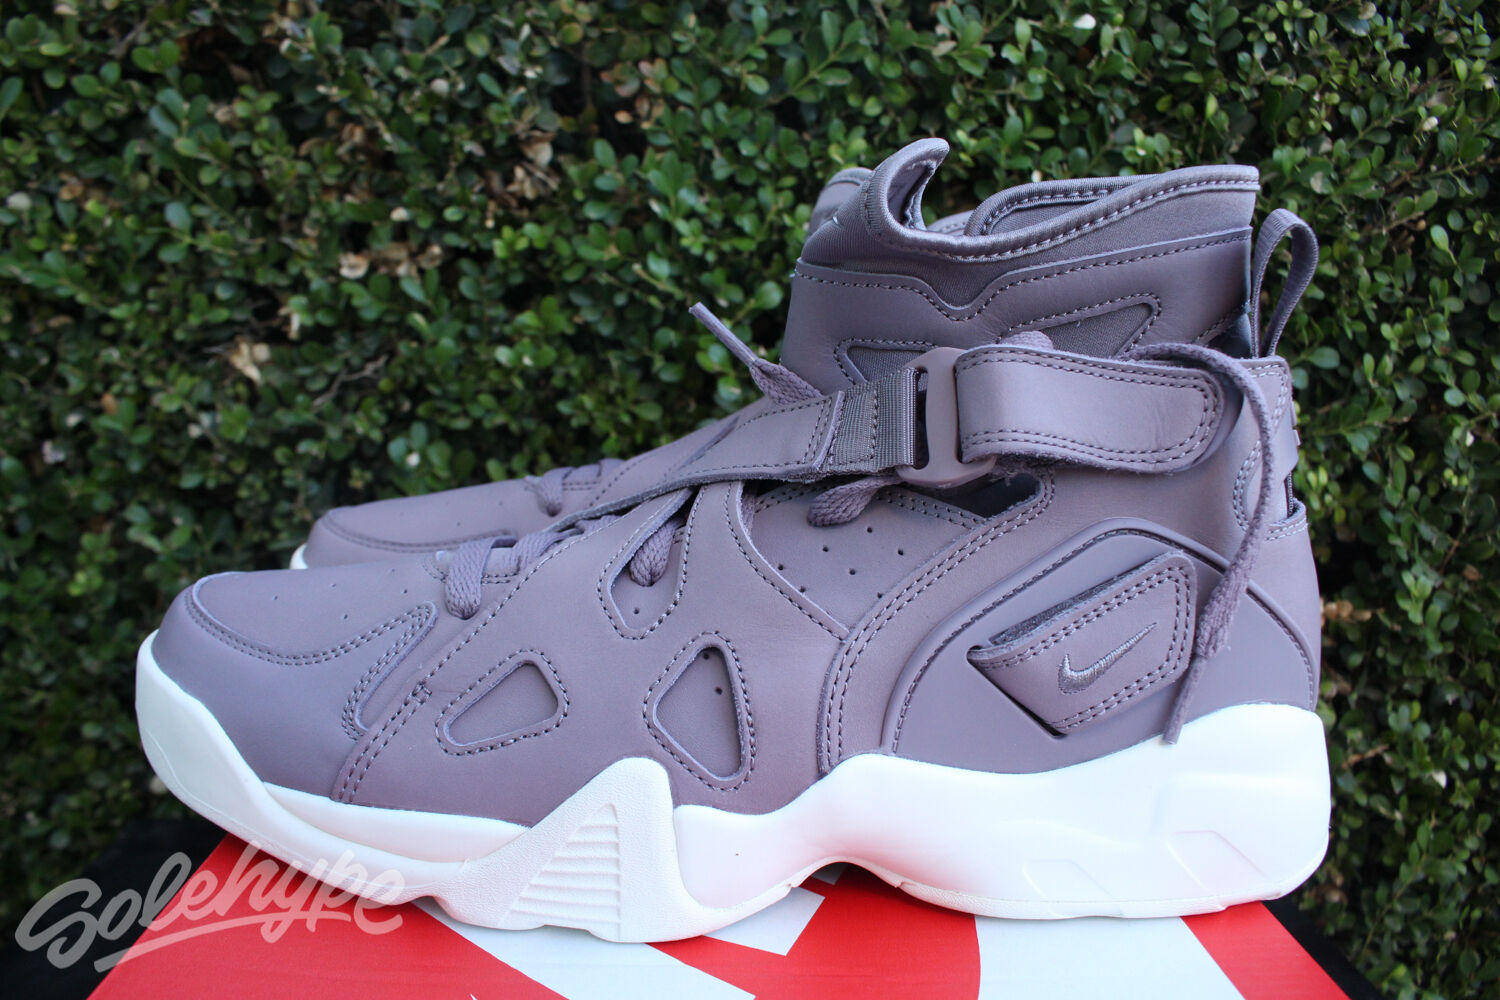 NIKE AIR UNLIMITED SZ NIKELAB 10 PURPLE SMOKE SAIL NIKELAB SZ 854318 551 af8228